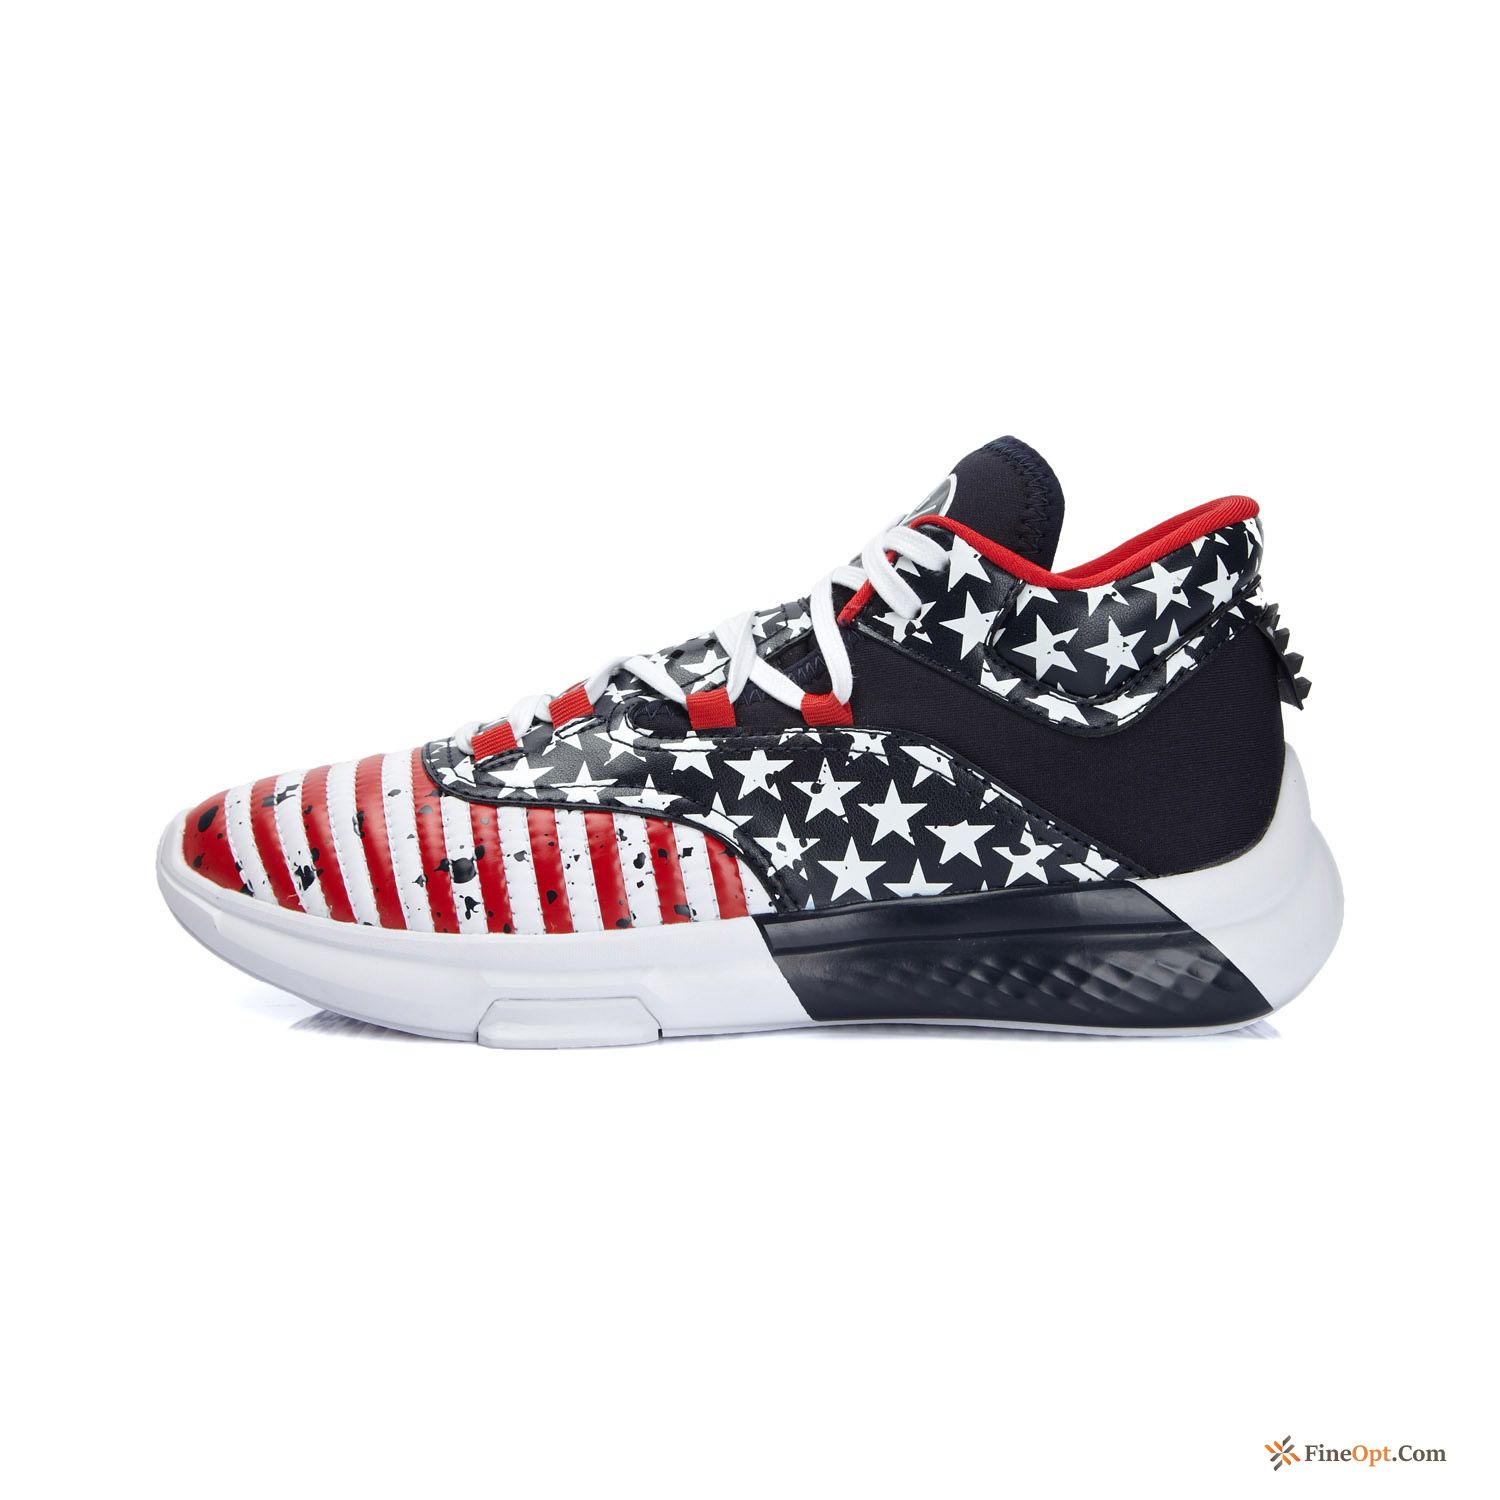 Men's Basketball Culture Athletic Shoes Causal Shoes Basketball Shoes Discount